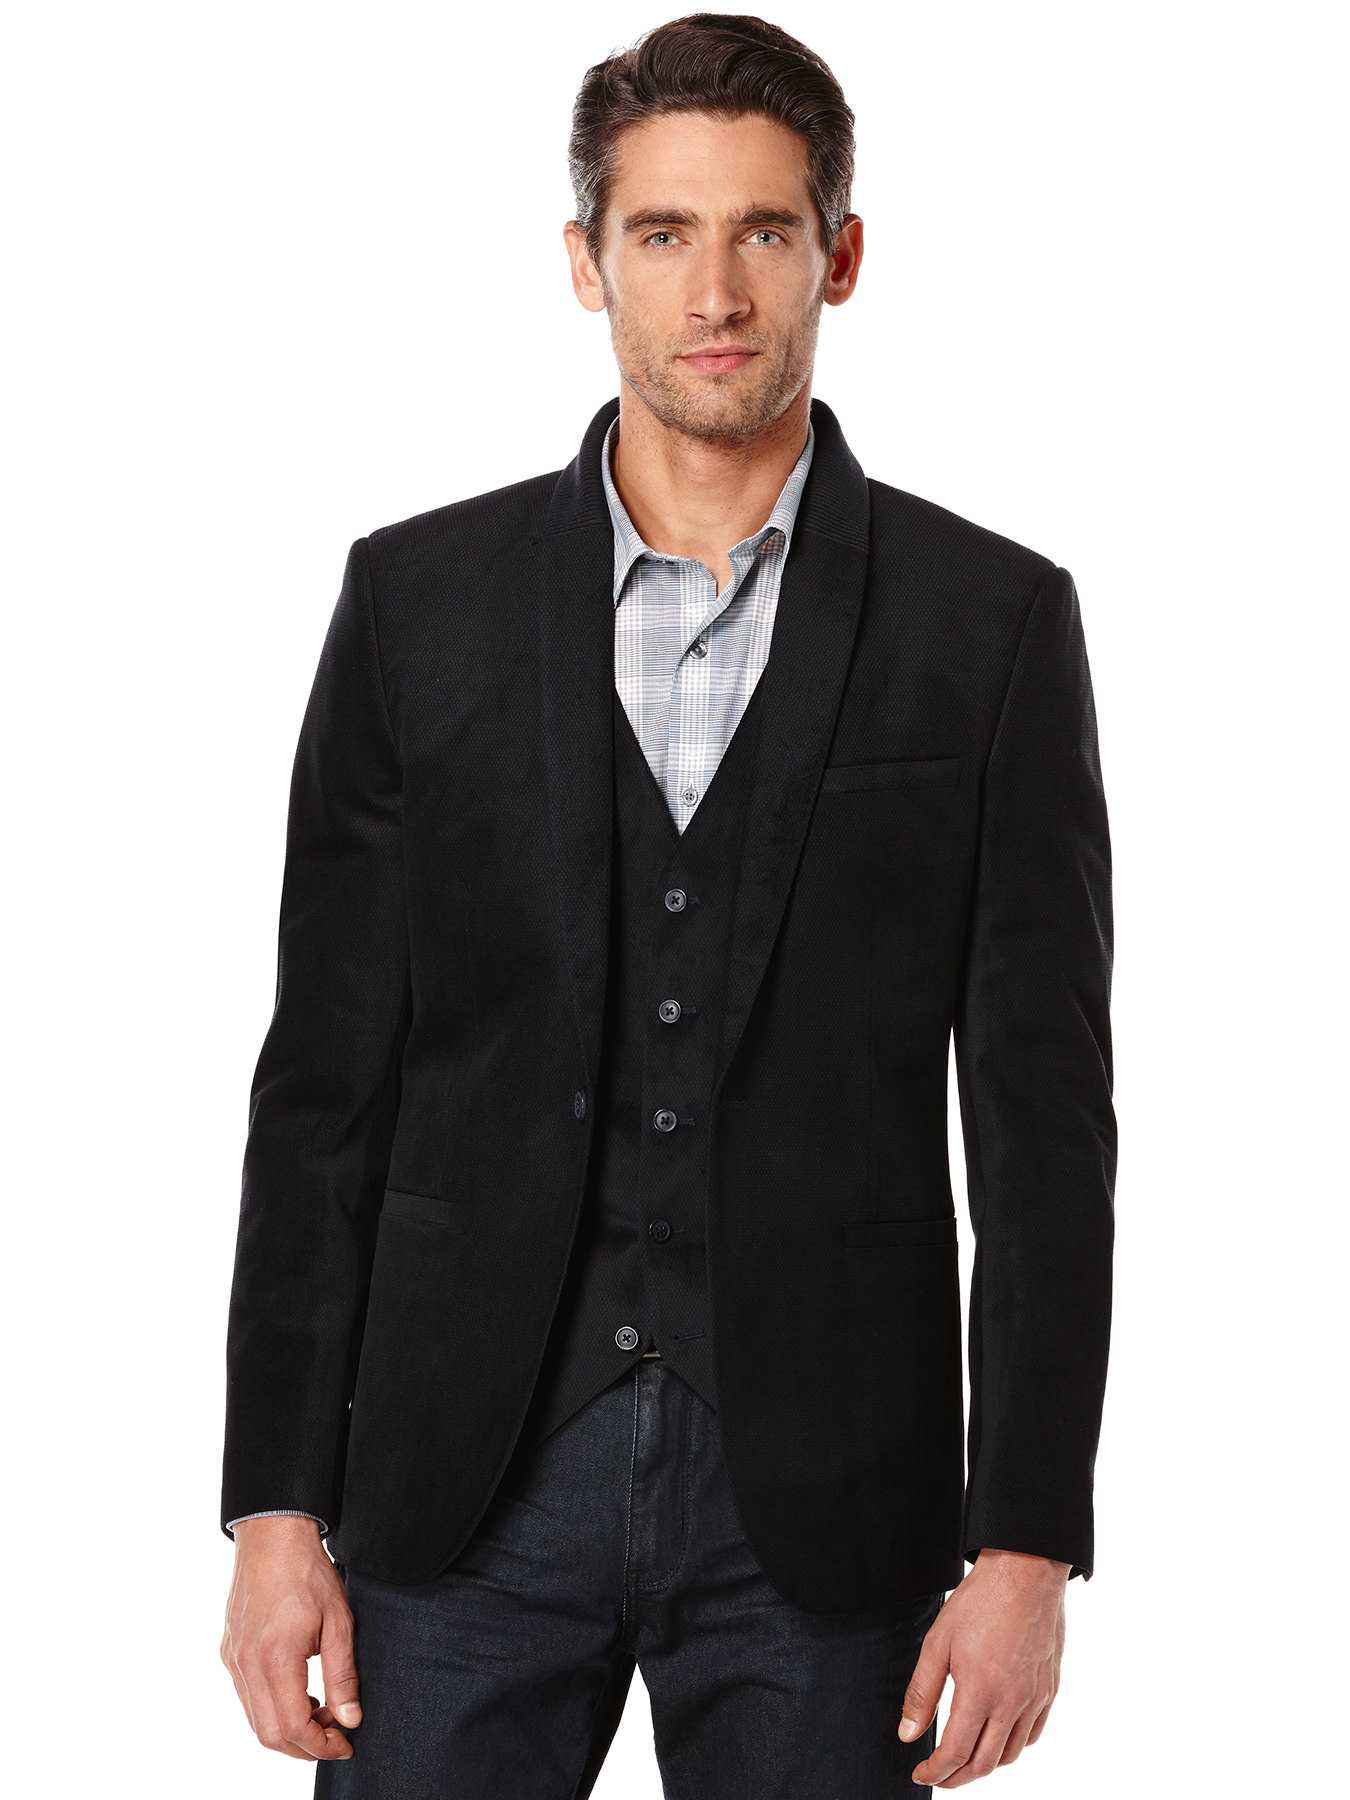 Perry Ellis Printed Velvet Party Suit Jacket